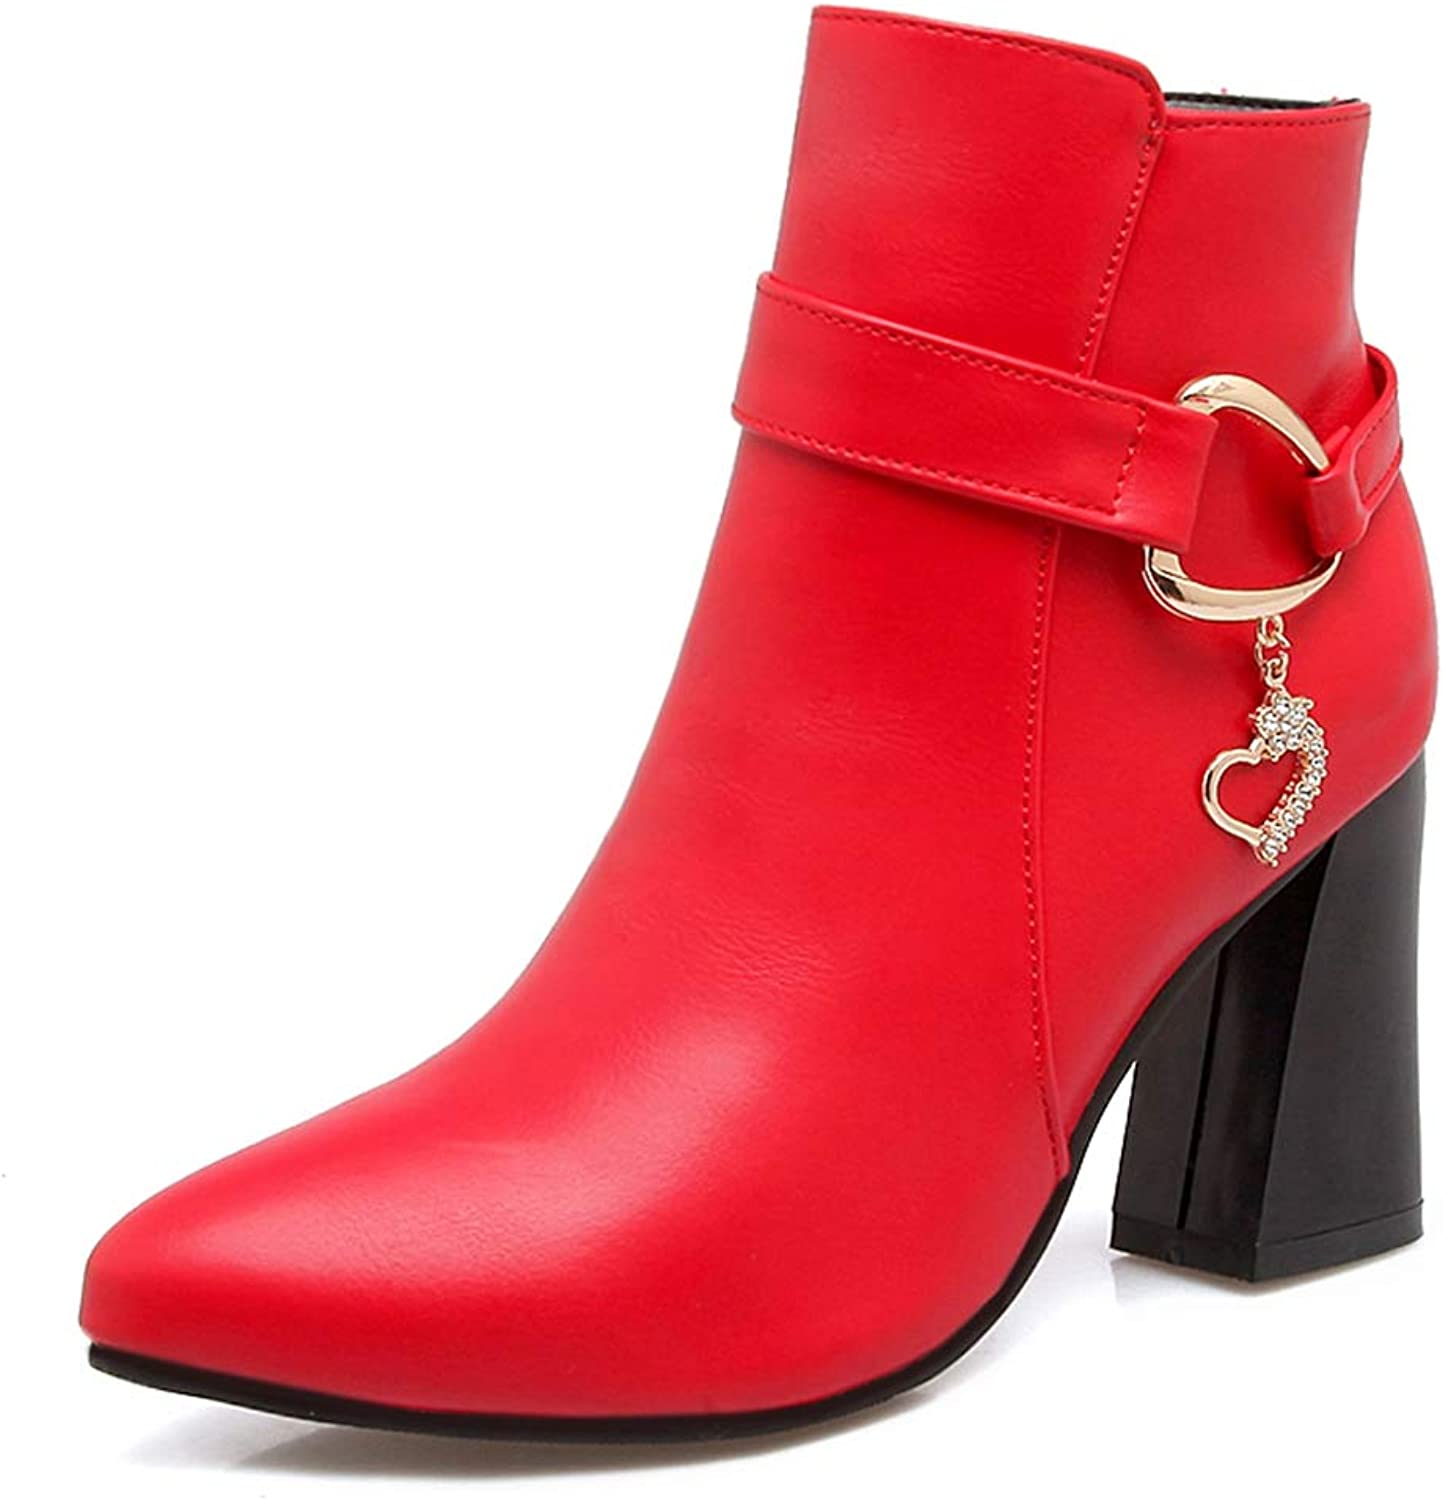 Btrada Women Pointy Toe Ankle Boots Winter Sexy Square High Heels Short Booties Office Lady Zip Dress shoes